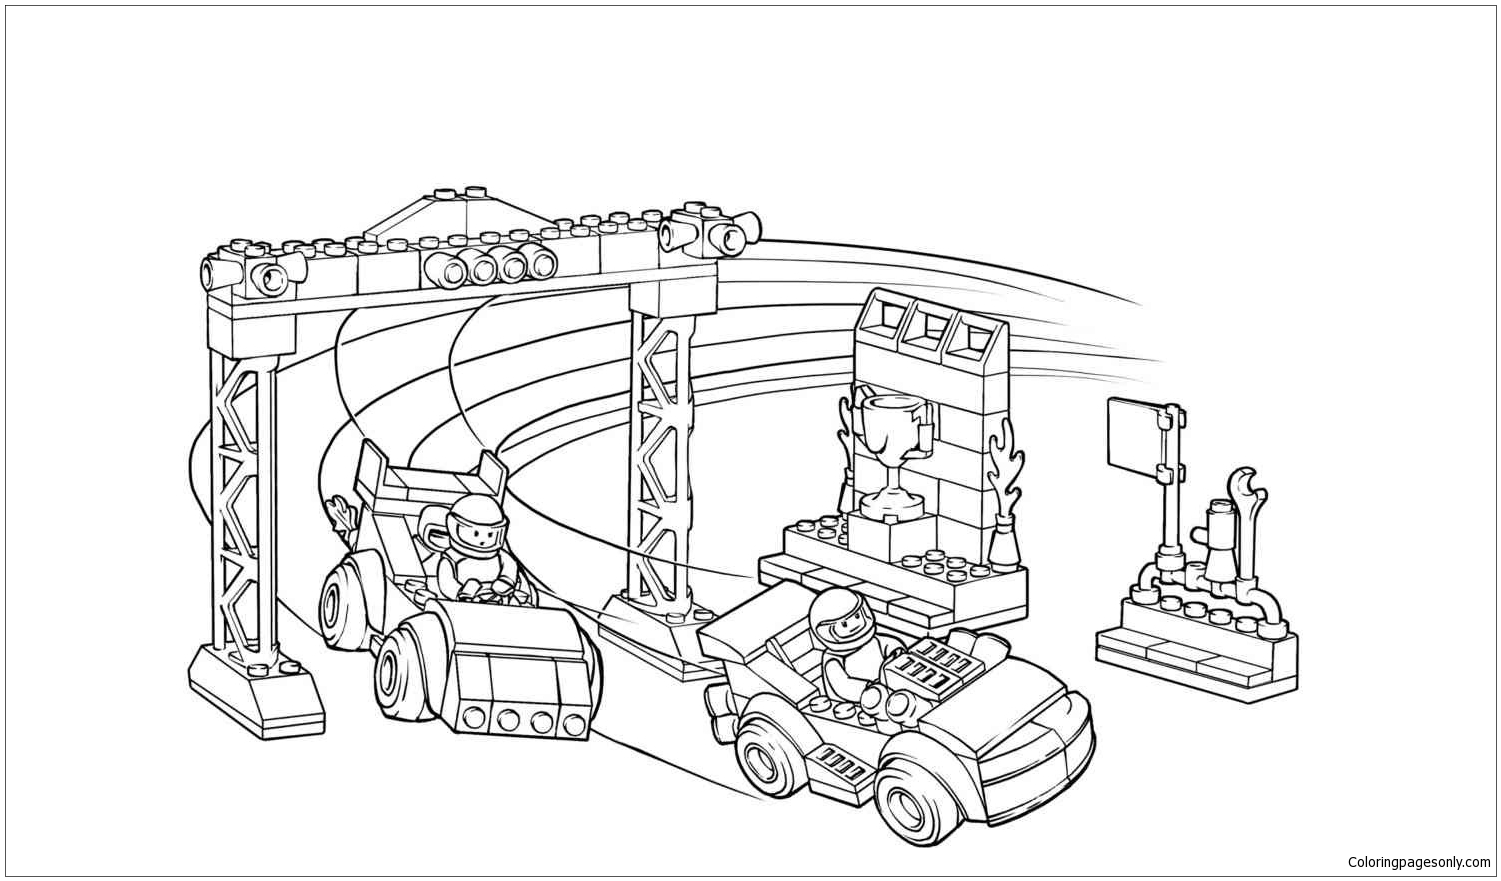 Lego City 2 Coloring Page Free Coloring Pages Online